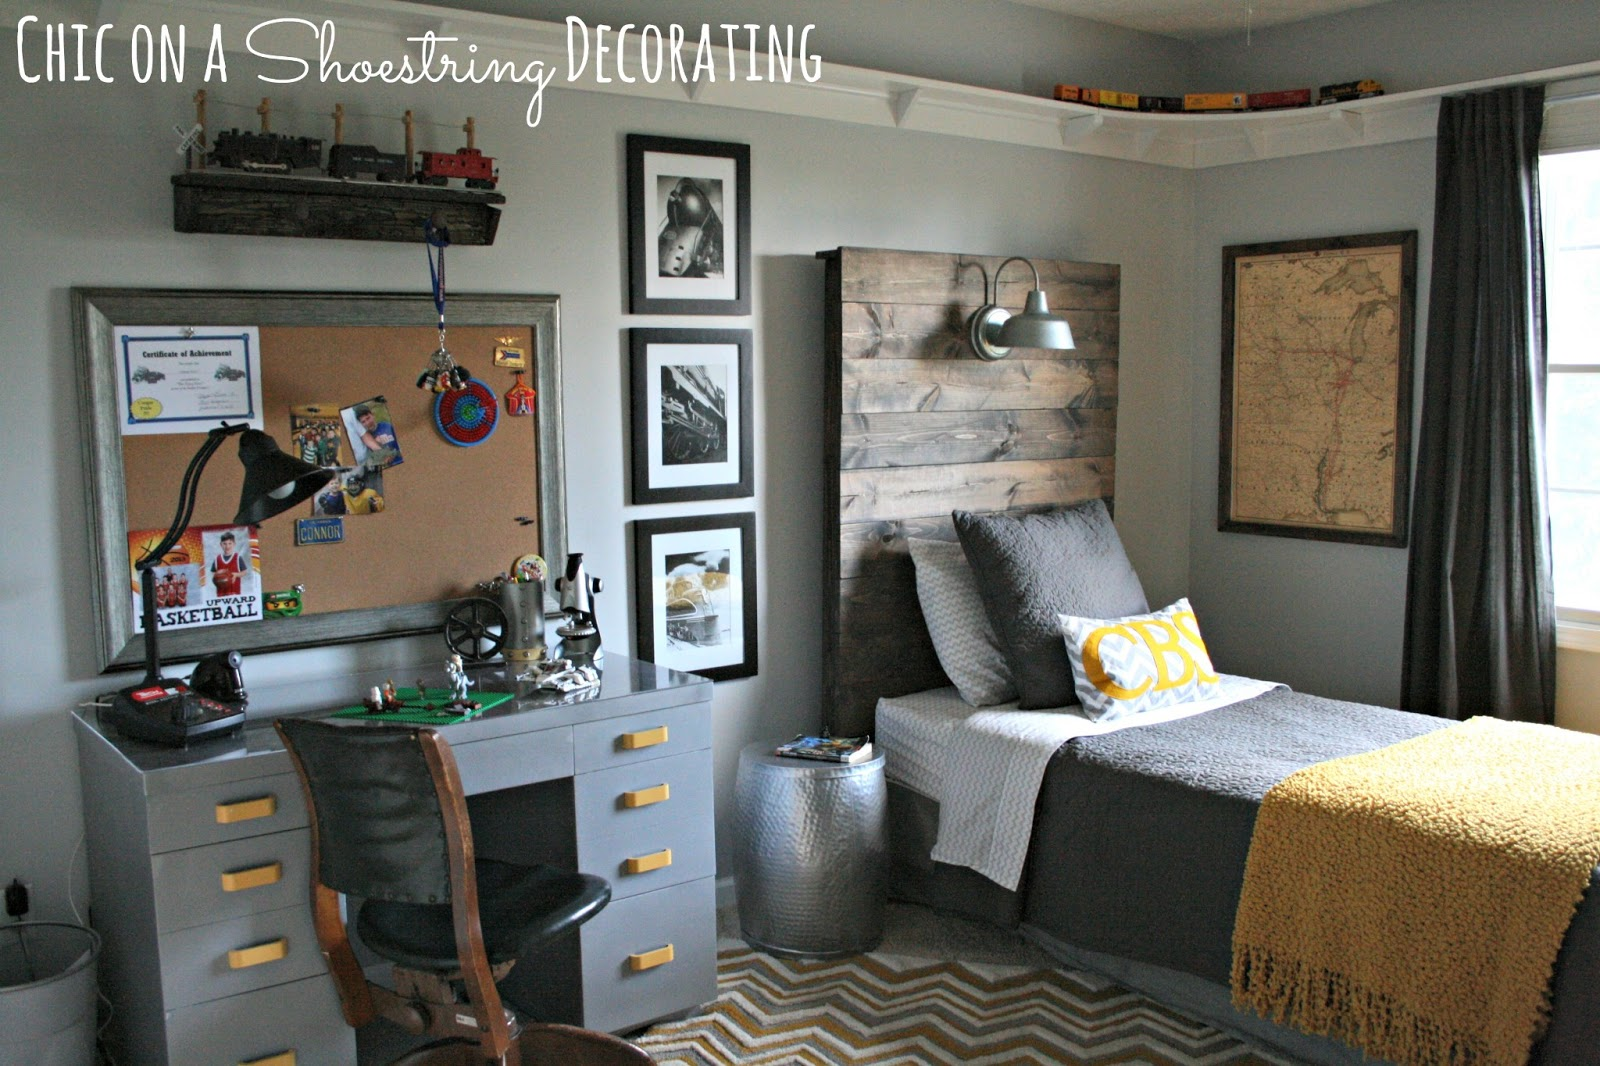 Chic on a shoestring decorating bigger boy room reveal for 14 year old room ideas